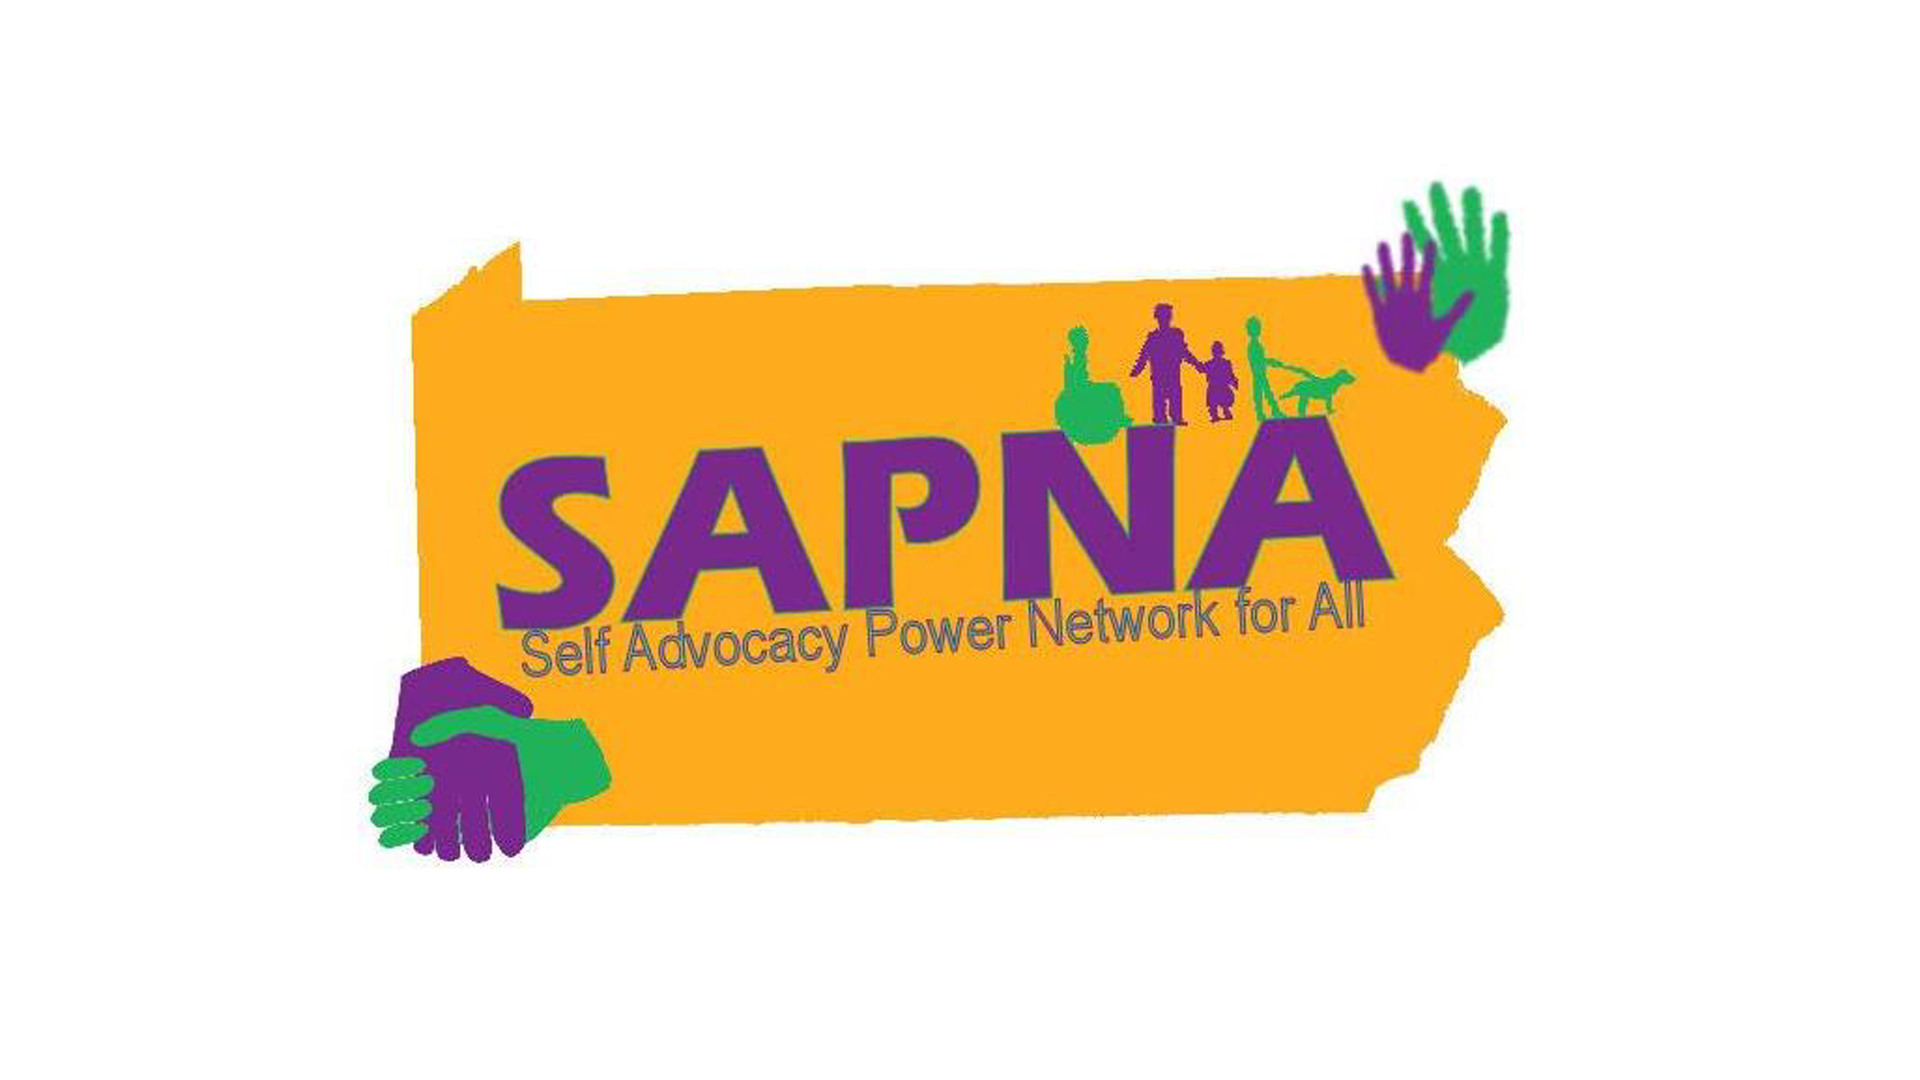 SAPNA self advocacy Power Network For All full size logo - Self Advocacy PNG